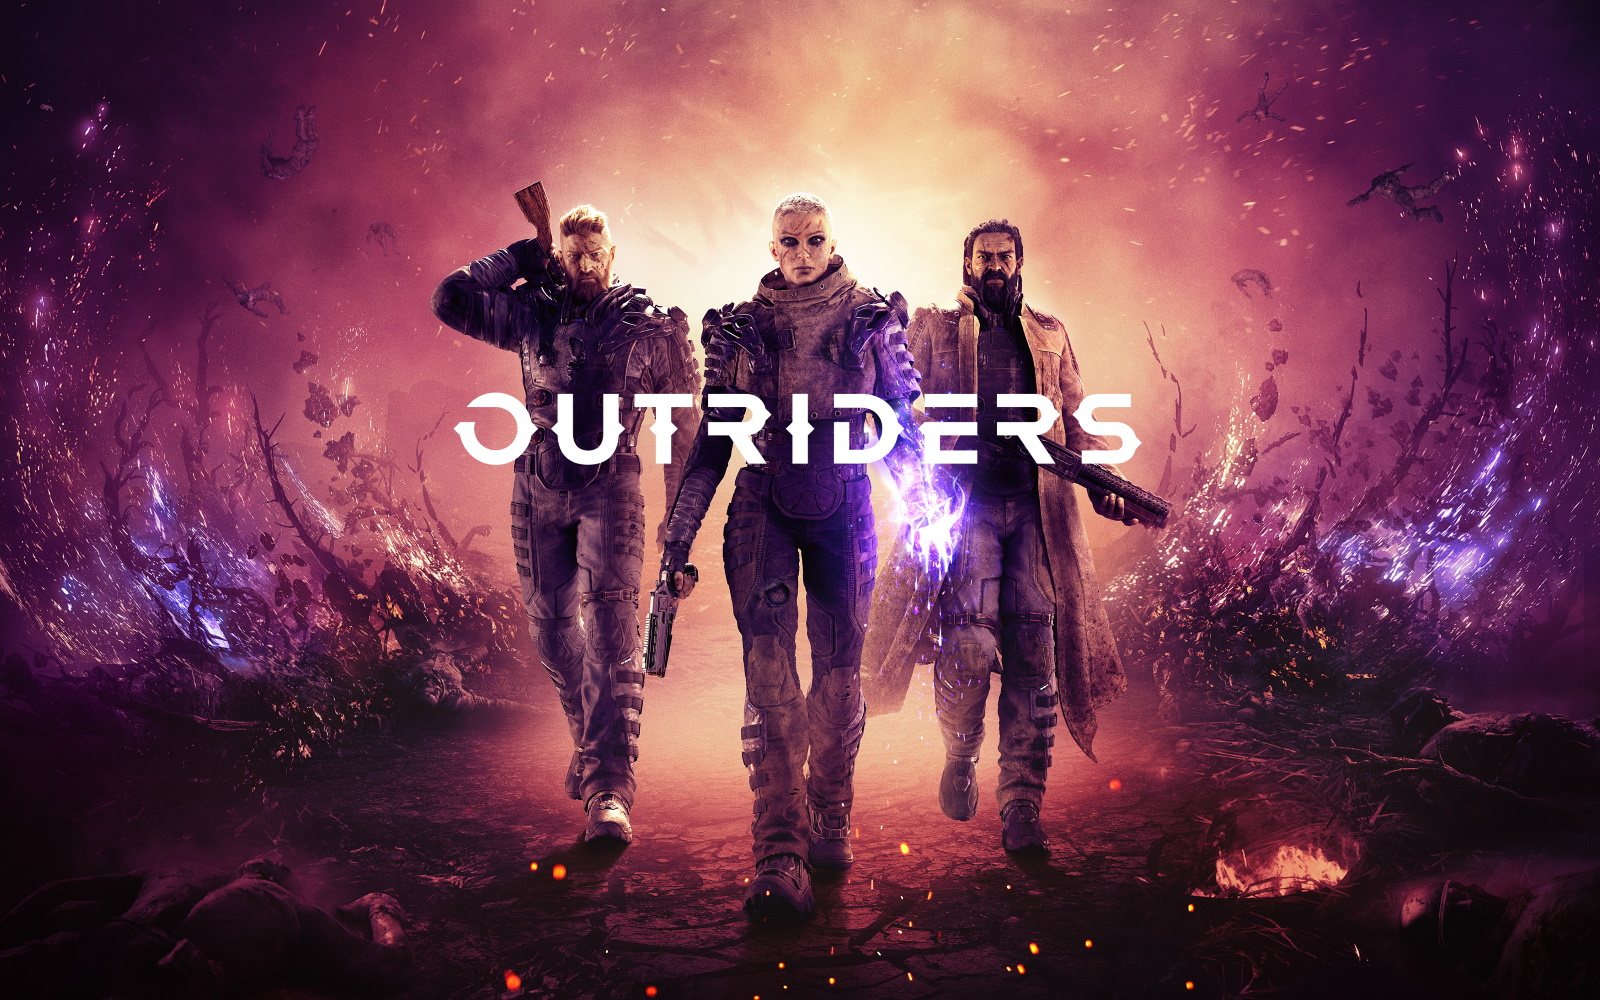 Outriders Release Pushed, But Demo Coming In February